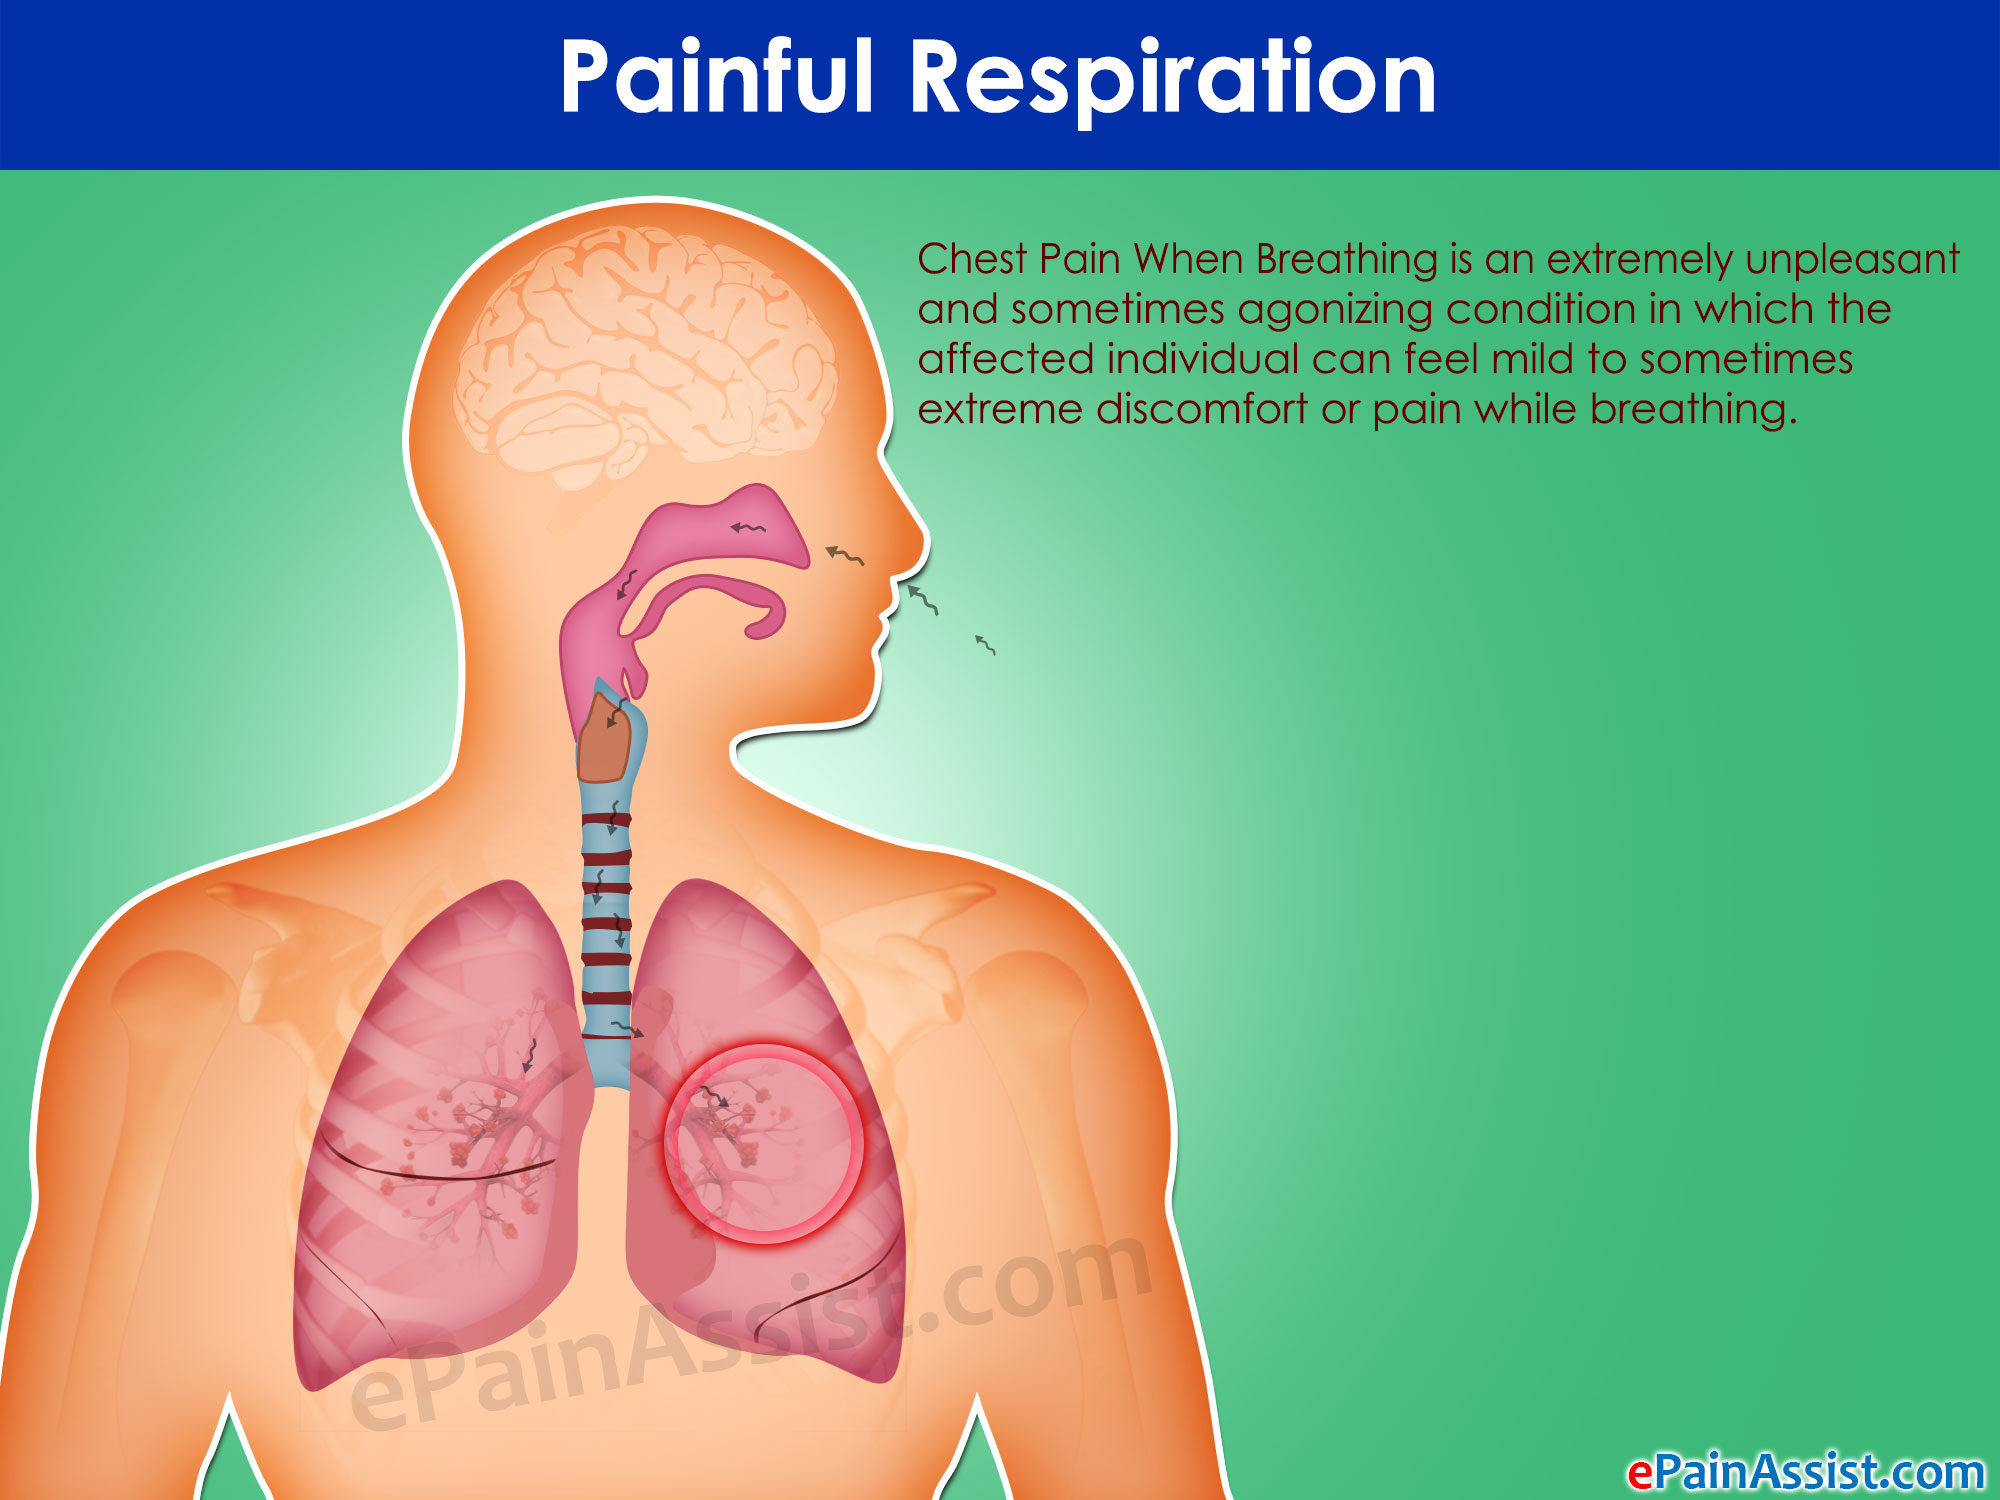 Painful Respiration